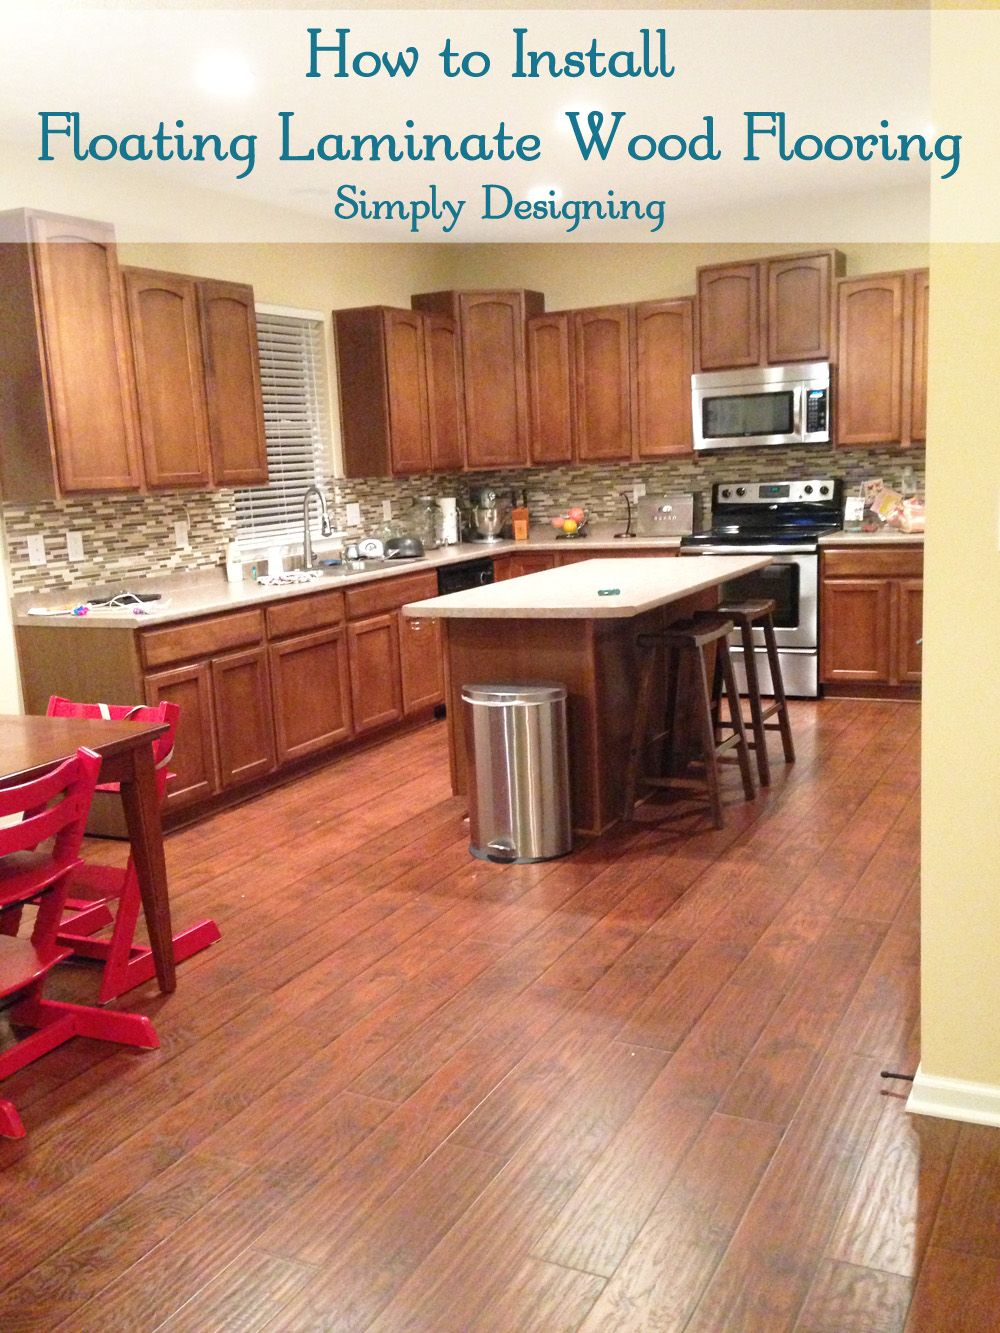 How To Install Floating Laminate Wood Flooring Diy Homeimprovement Simply Designing